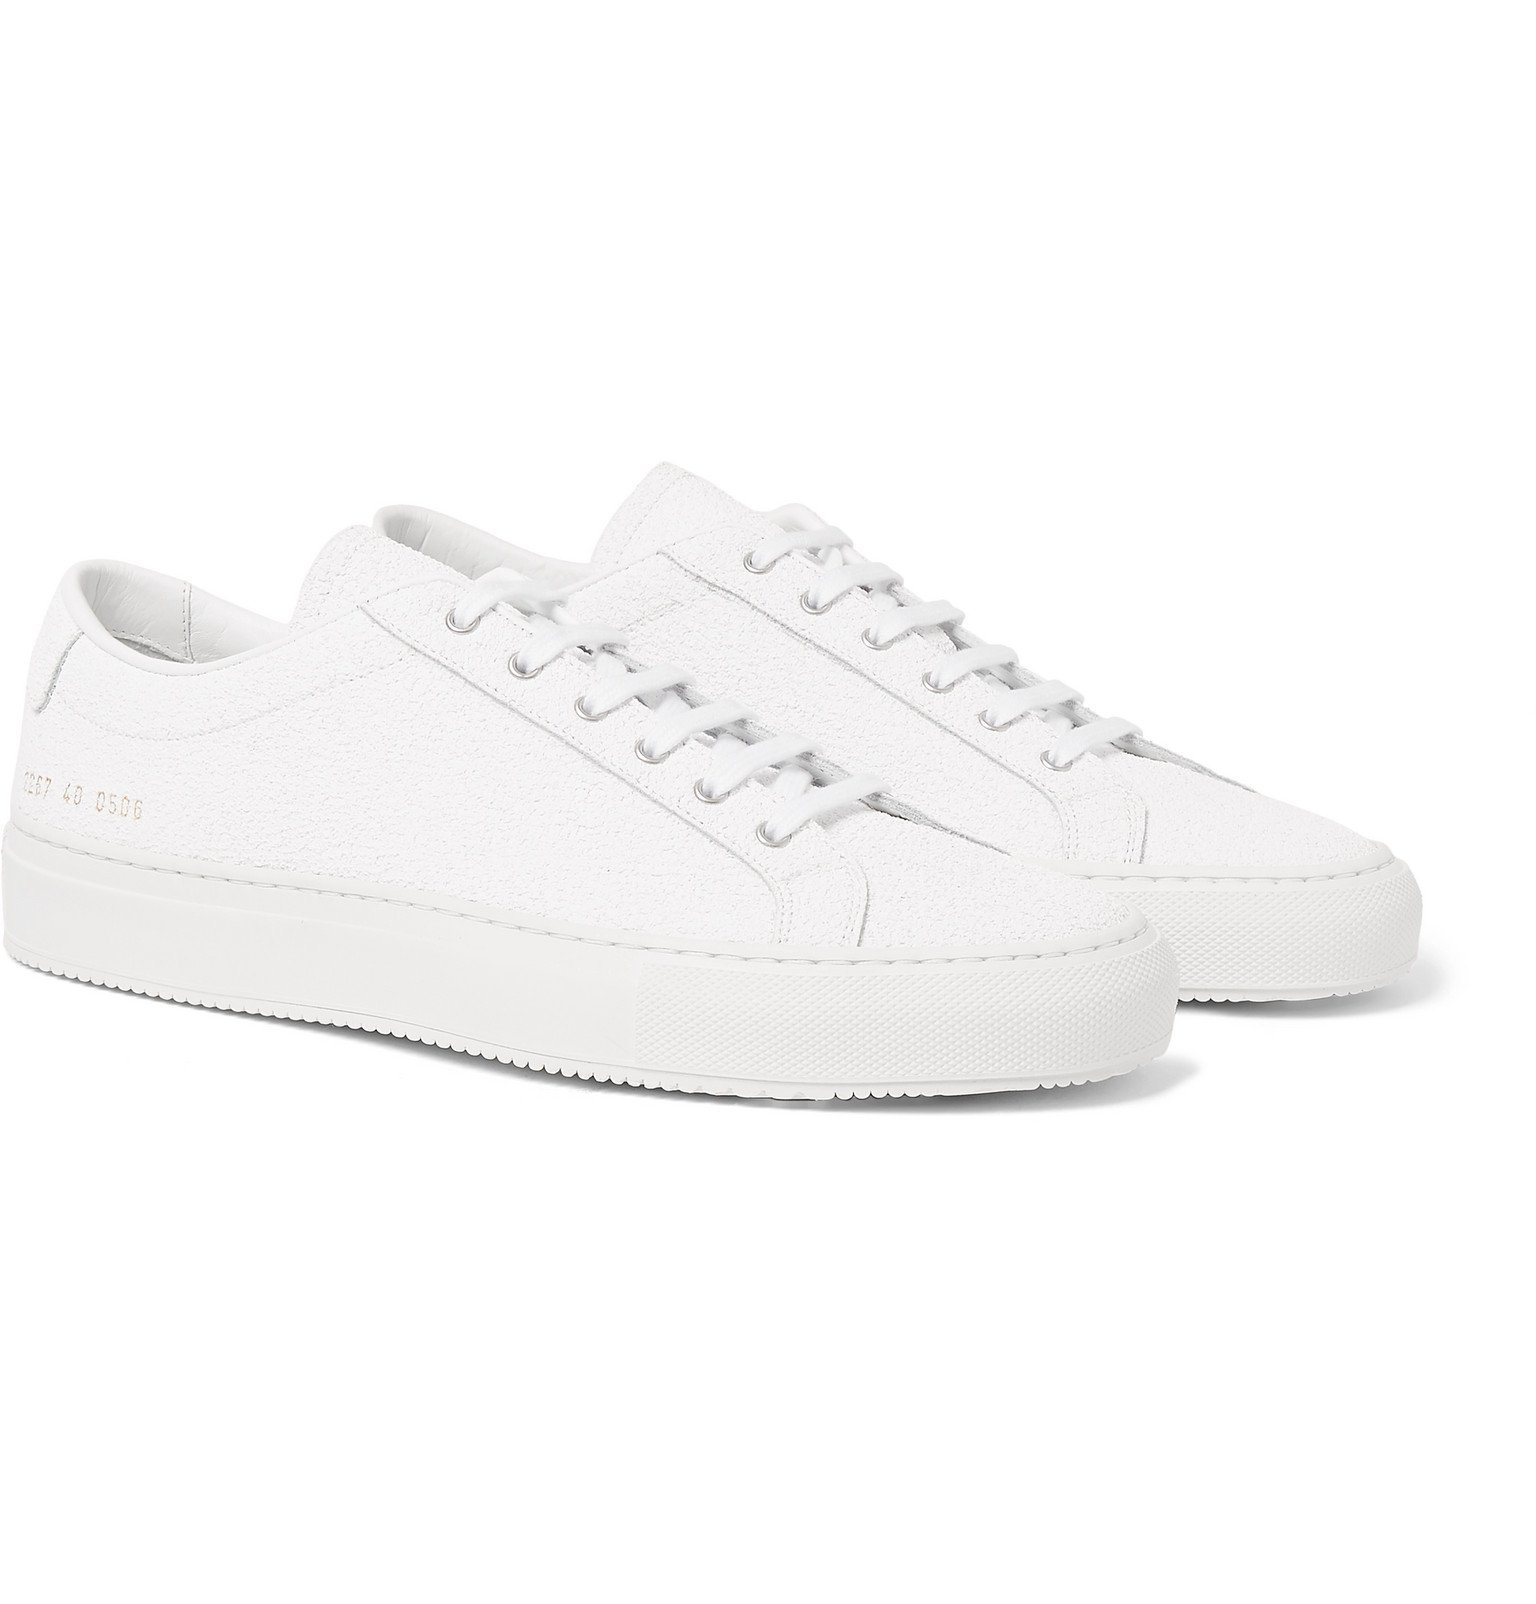 Common Projects - Achilles Premium Textured-Leather Sneakers - White